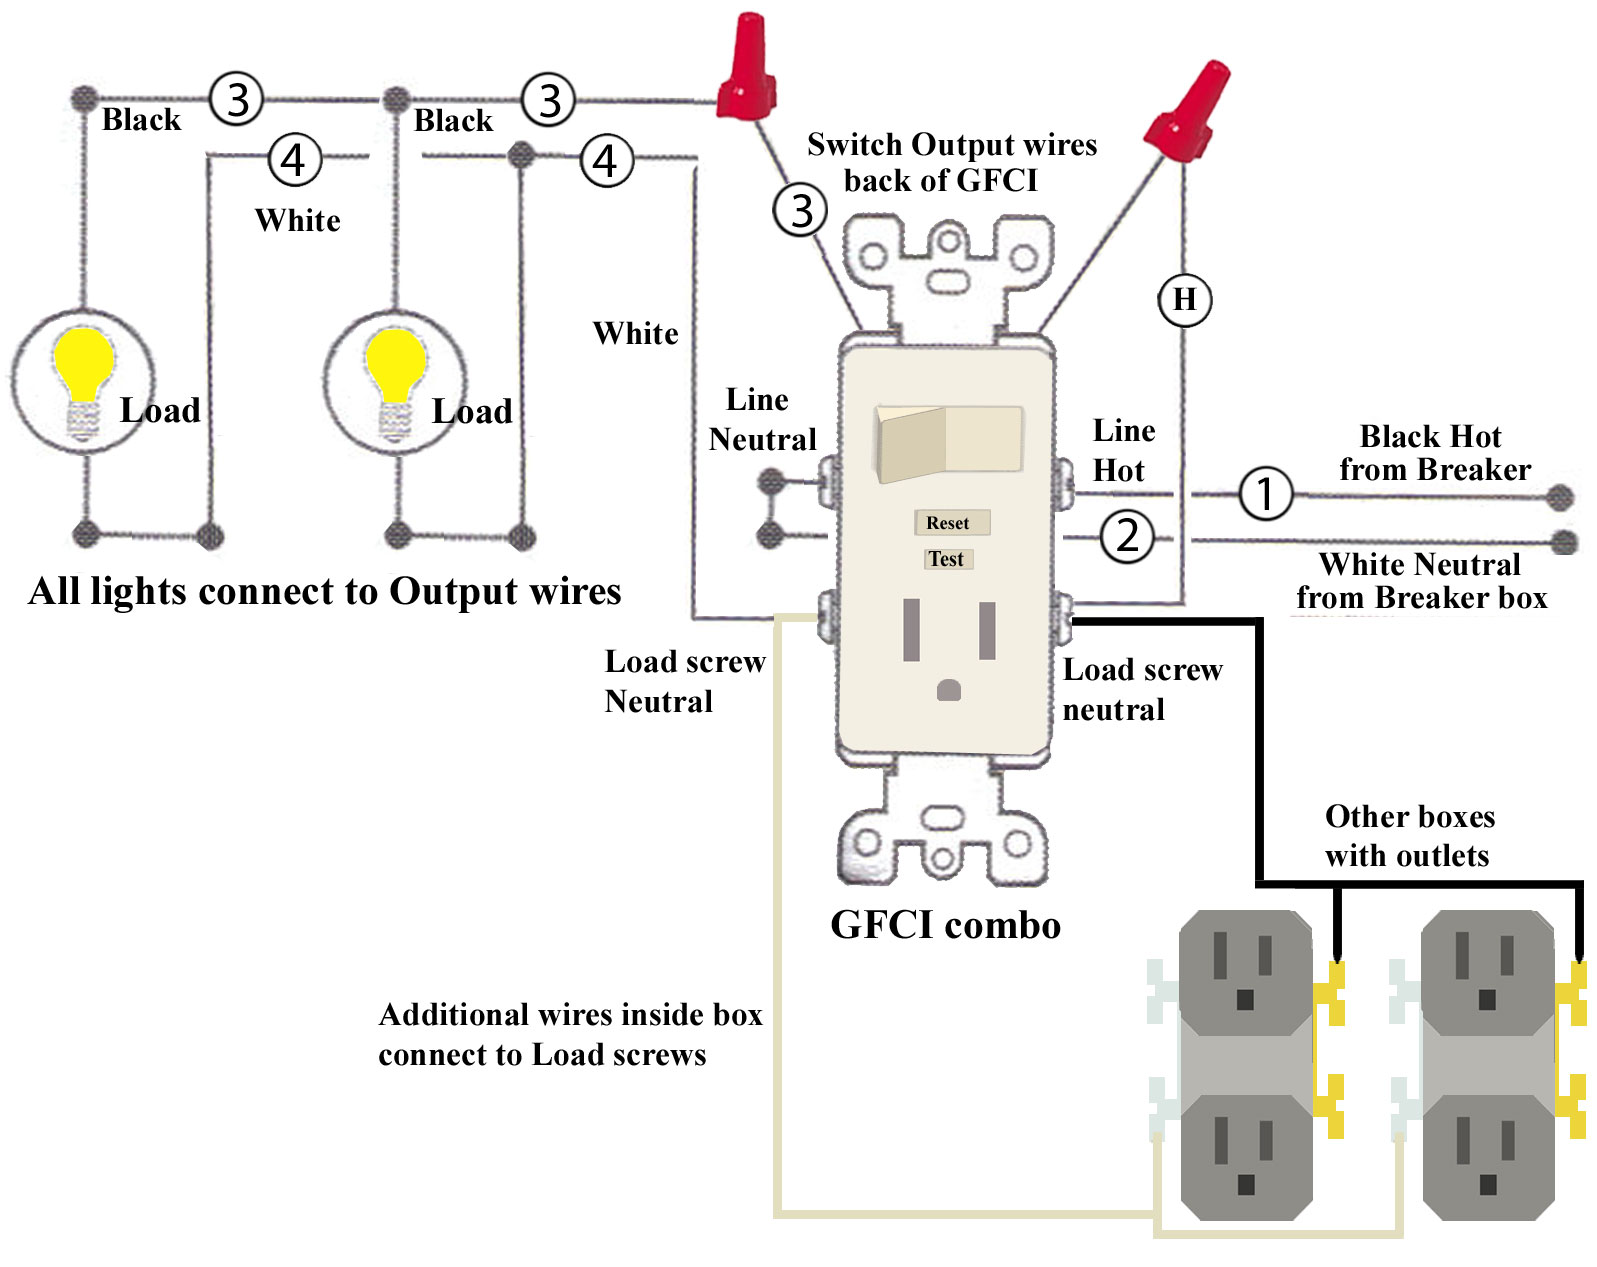 GFCI combo wiring3 update combination switch wiring diagram install light switch outlet gfci with switch wiring diagram at soozxer.org